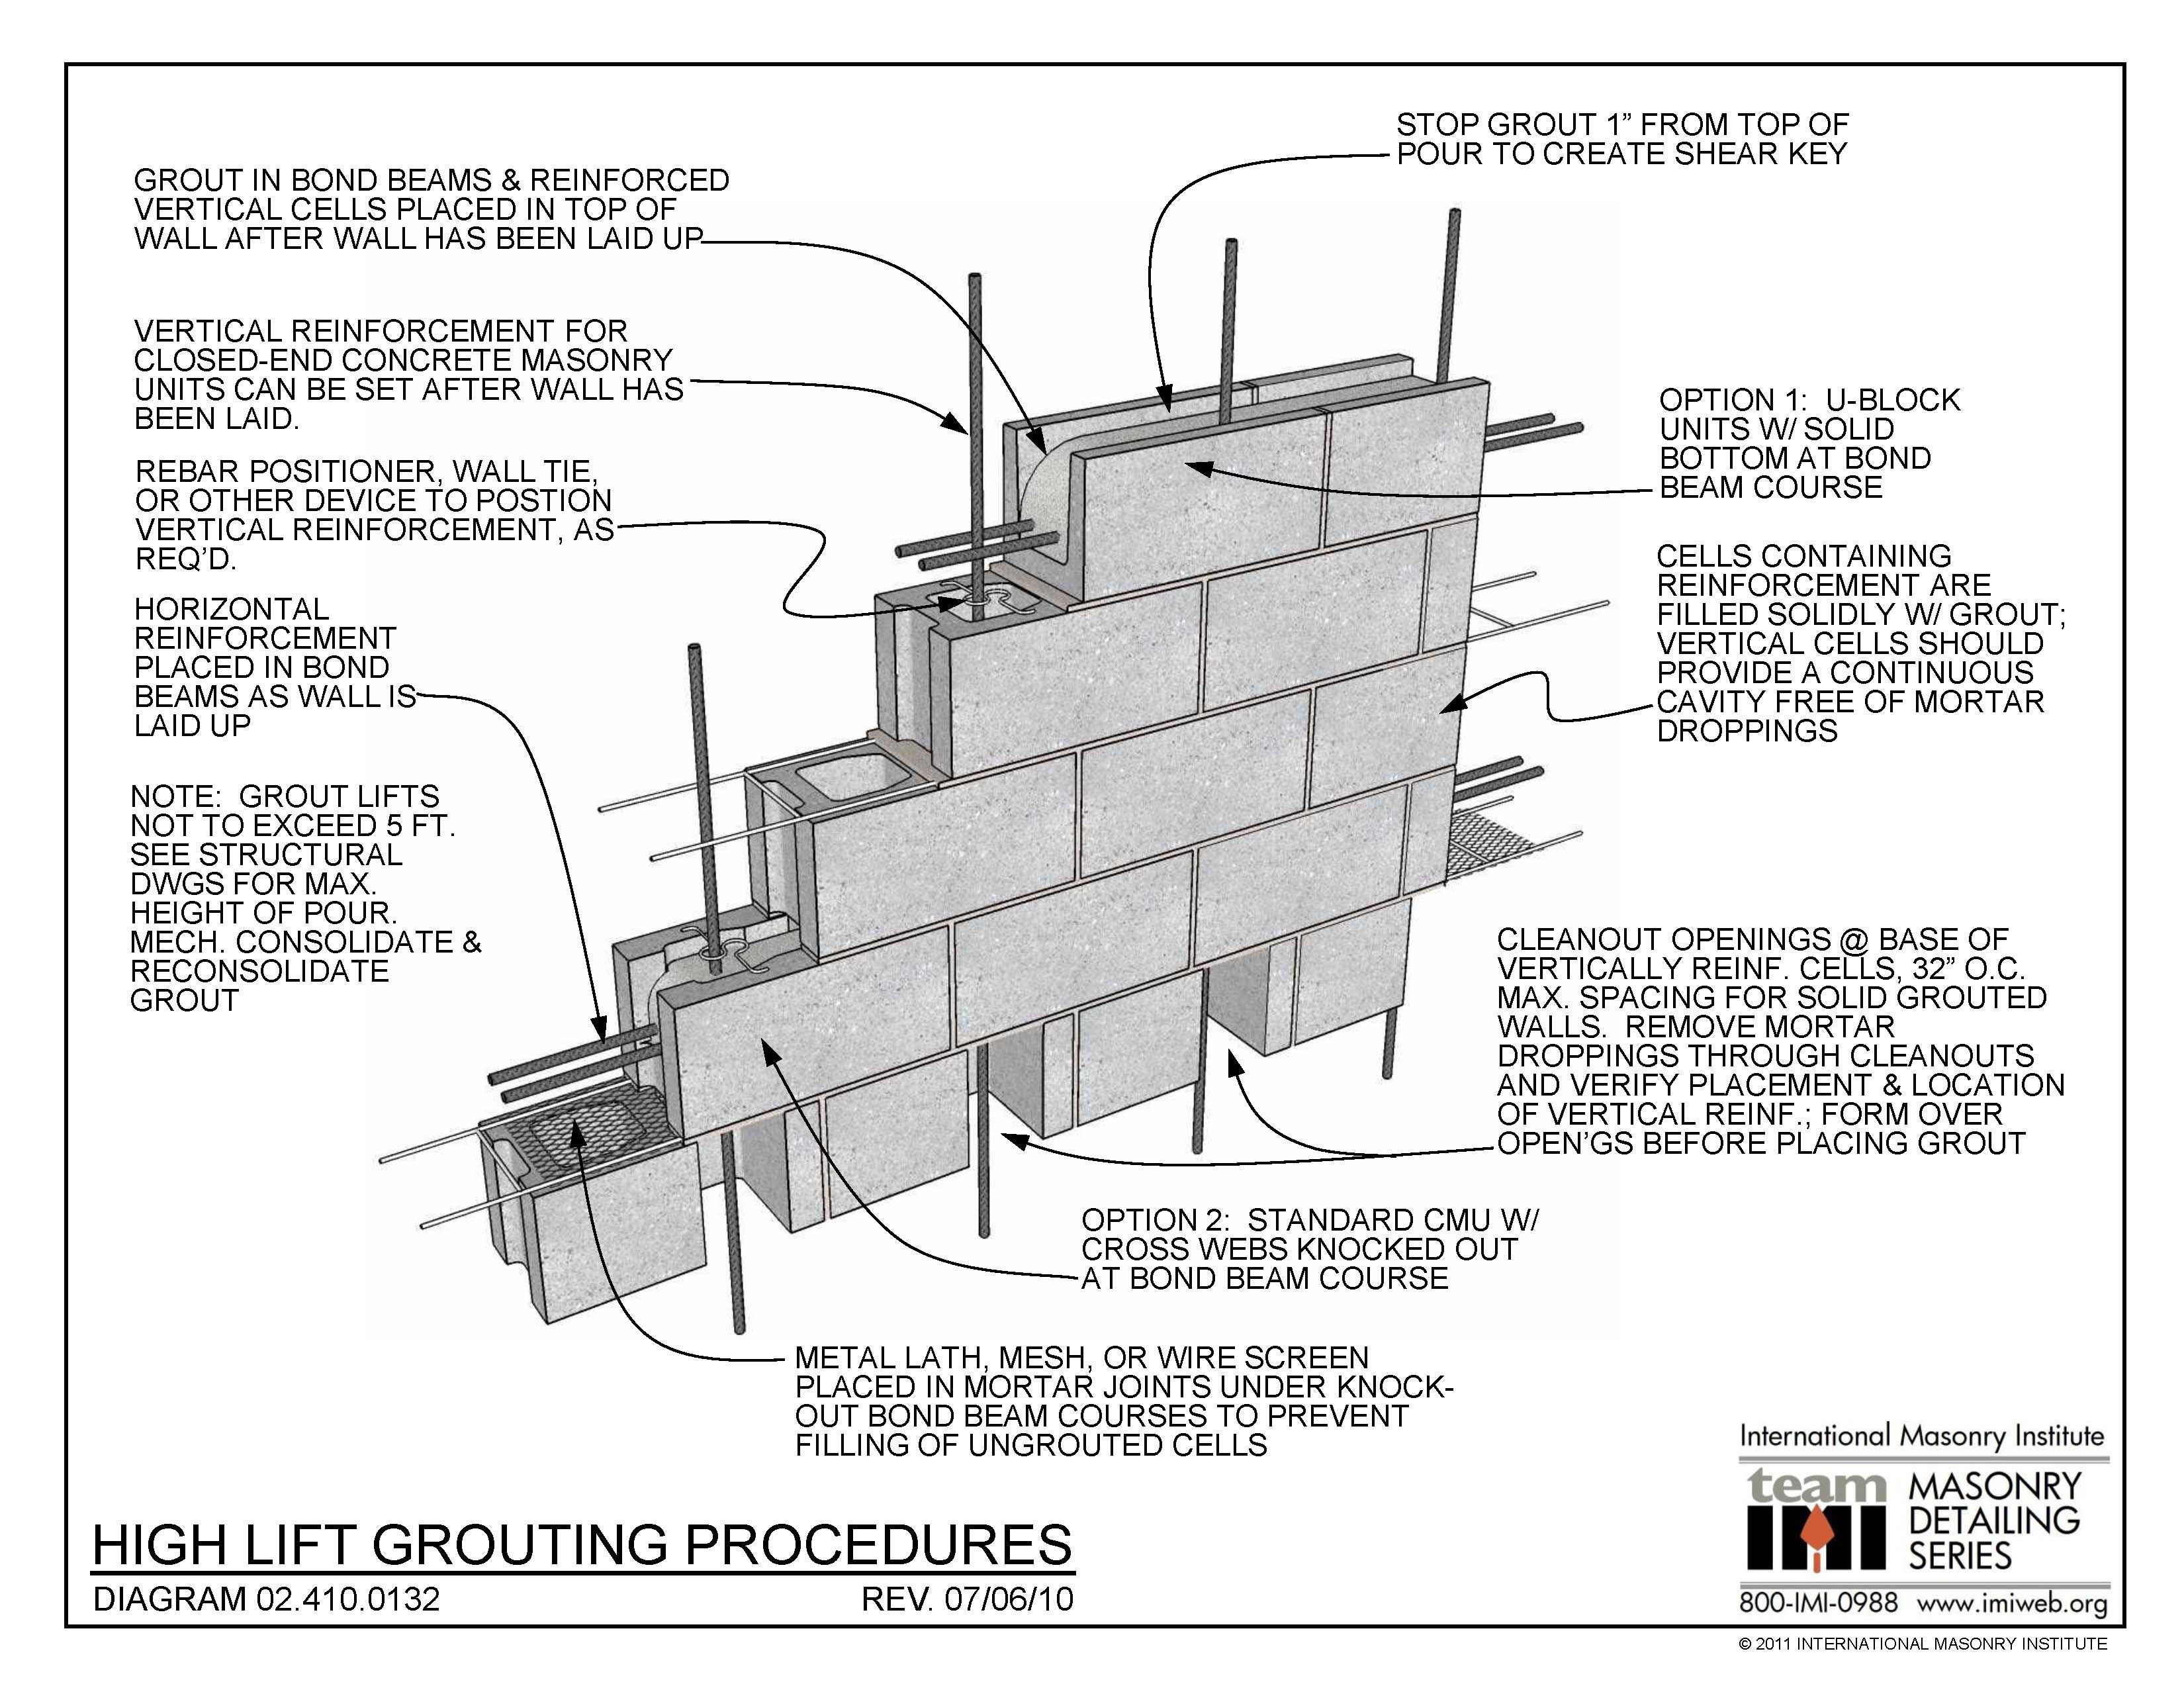 hight resolution of 02 410 0132 high lift grouting procedures international masonry institute construction drawings masonry